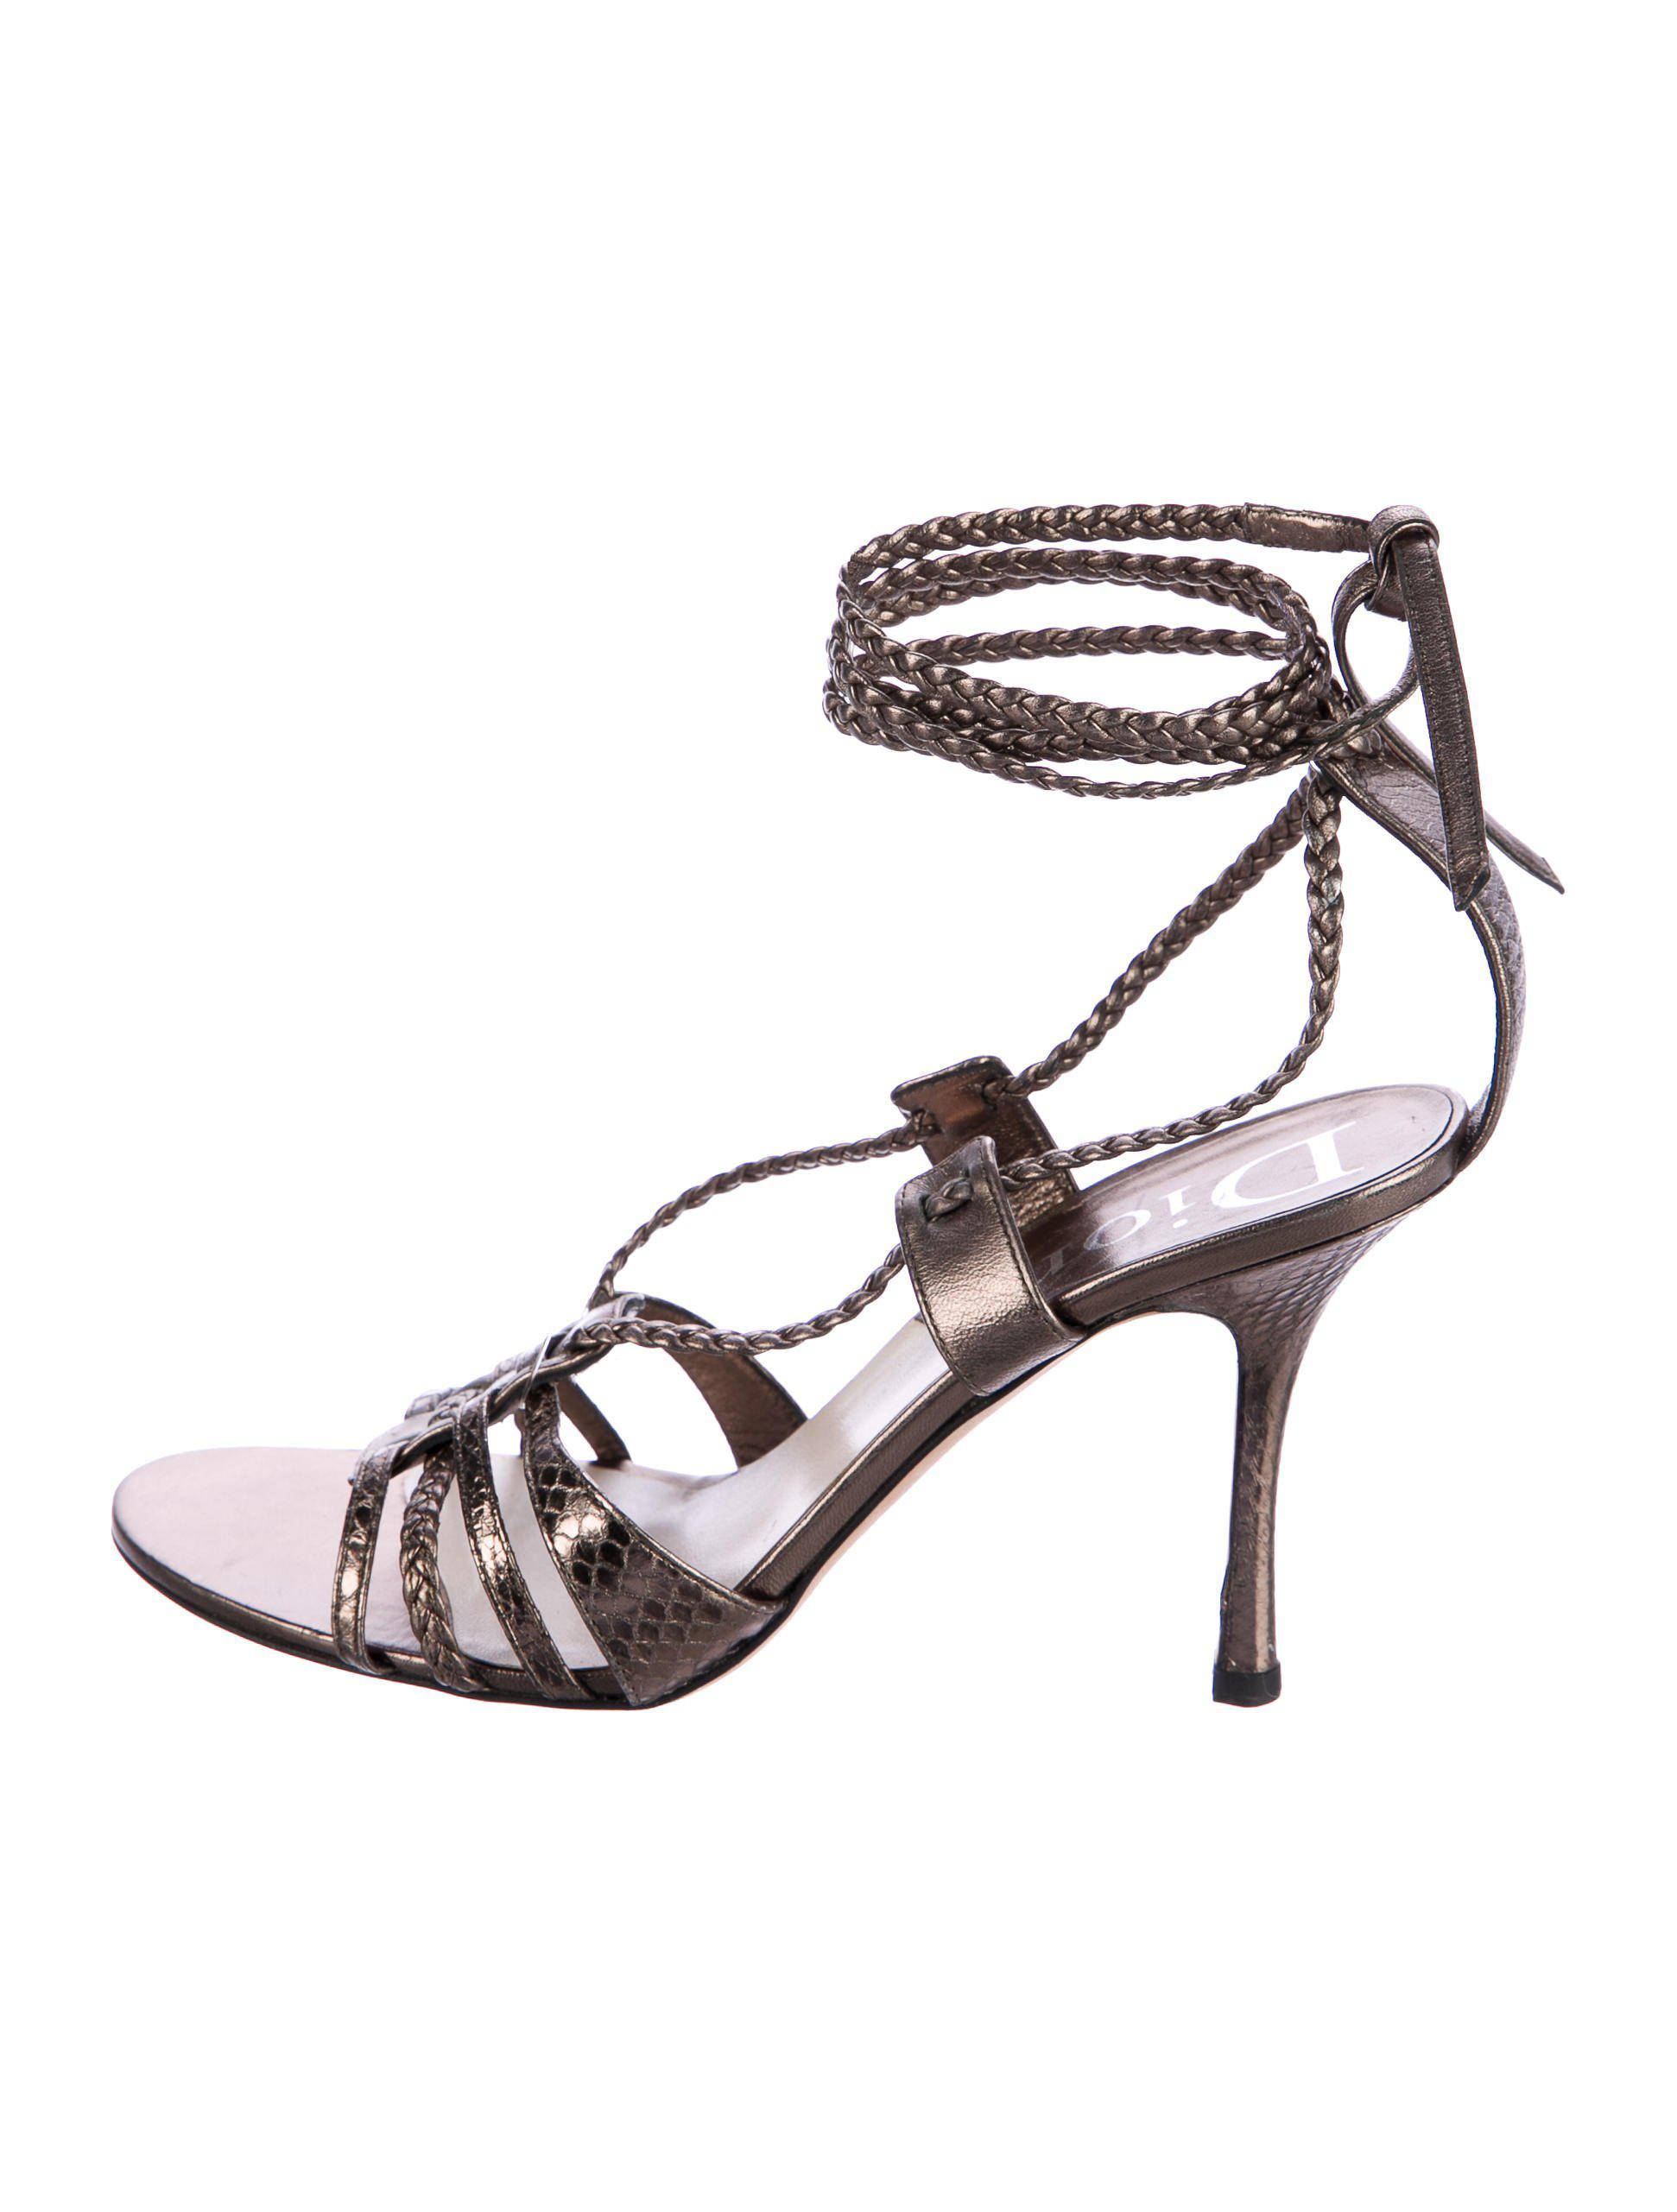 Christian Dior Embossed Multistrap Platform Sandals clearance low price xZ5UHS